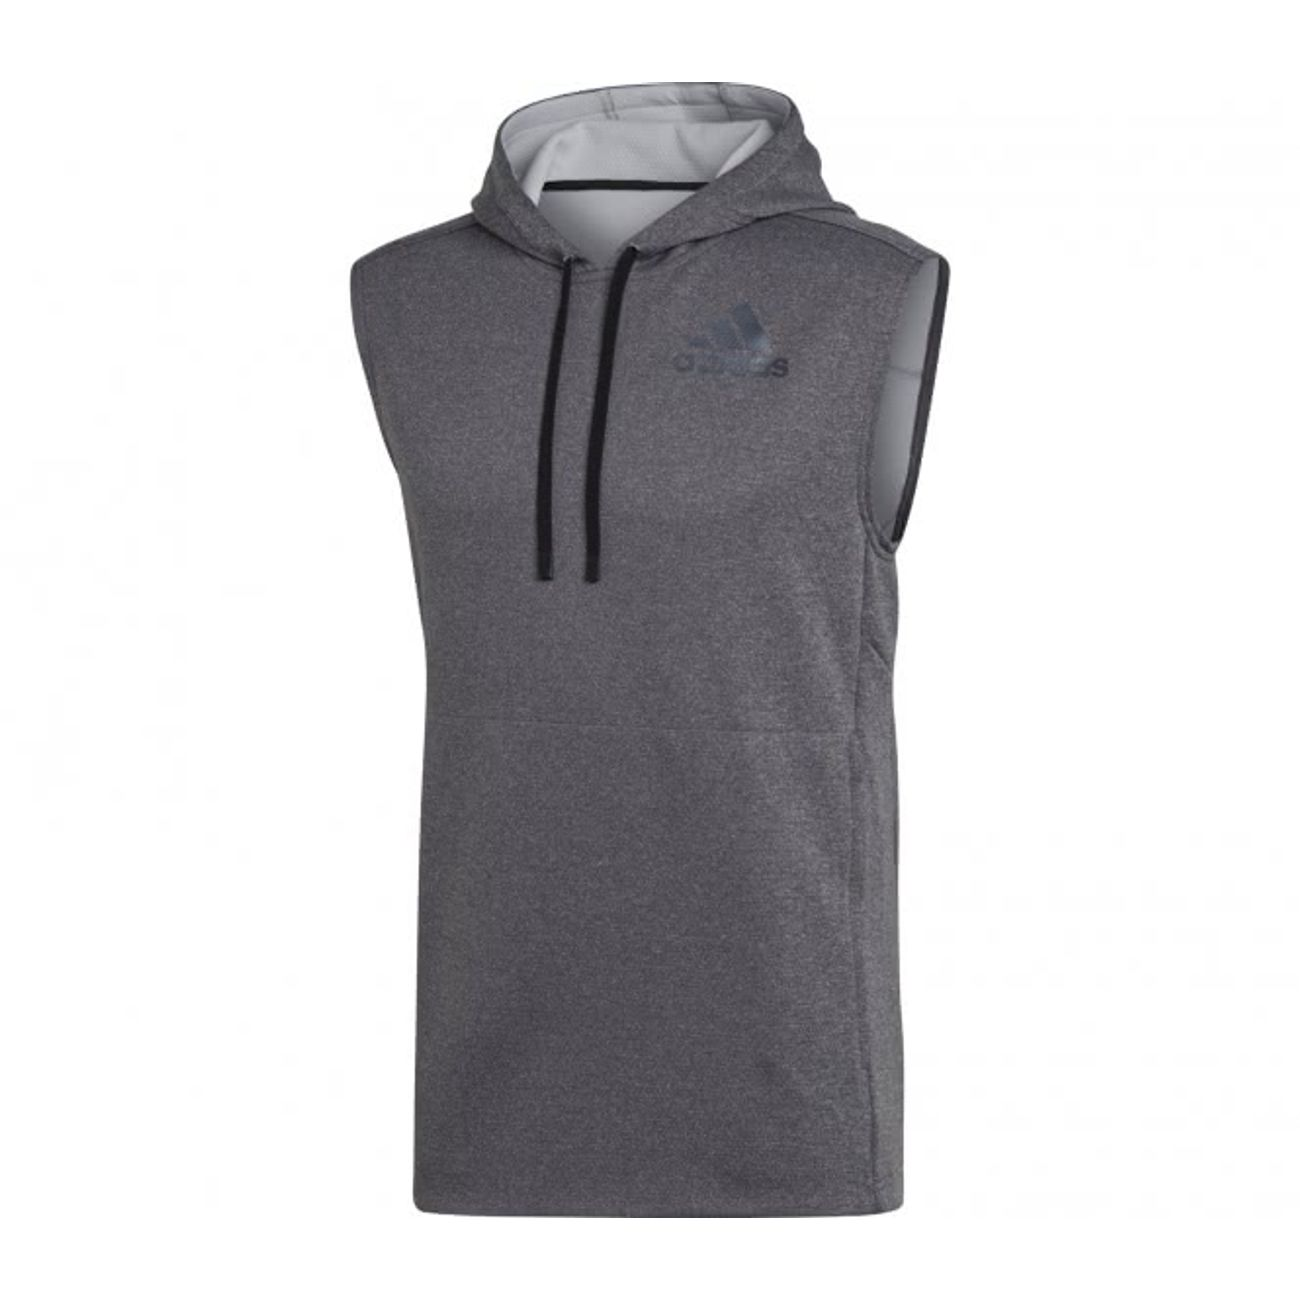 Hommes AdidasWo La Fitness Homme Sleeveless T chemisegris Hooded Formation uFK13Tl5Jc